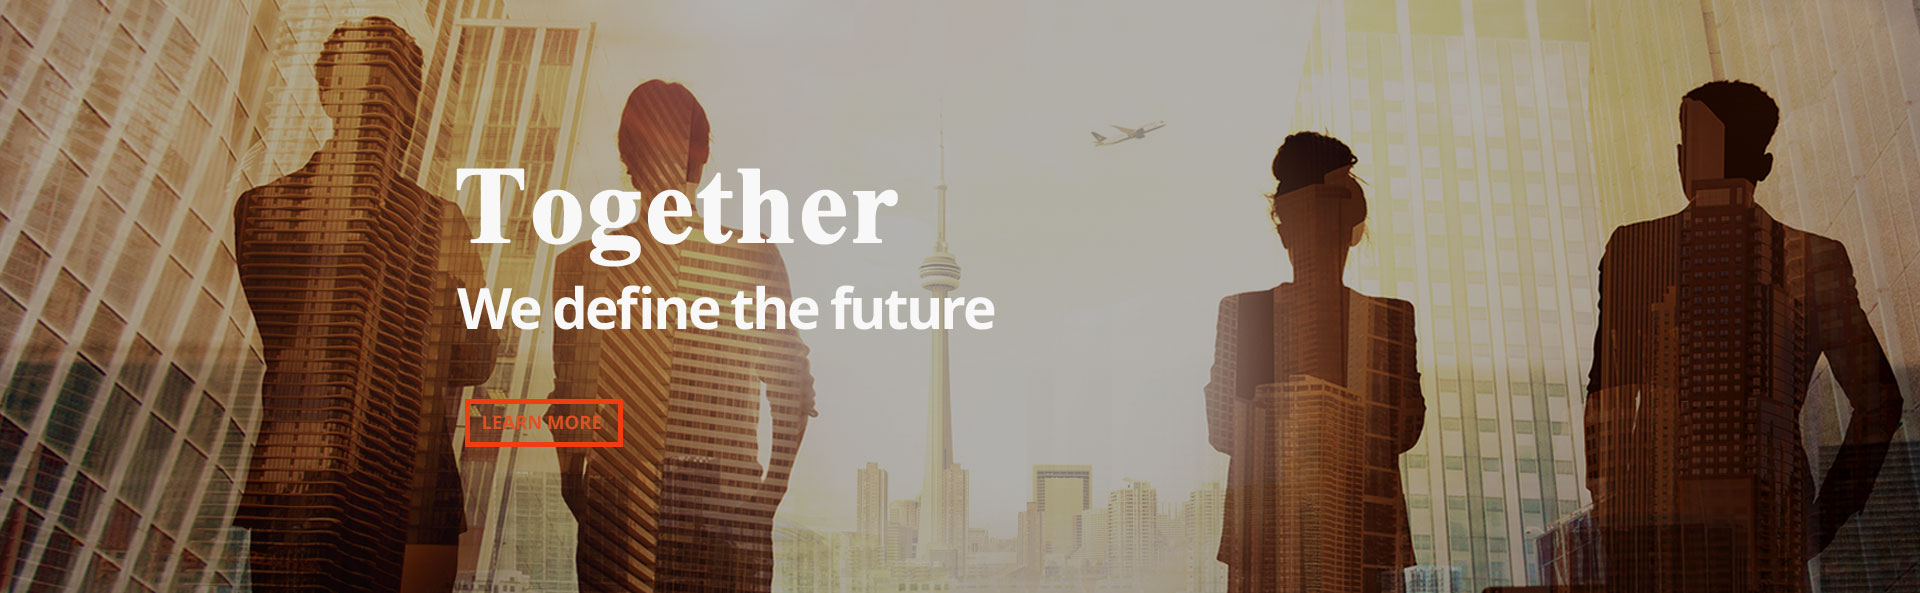 Together, we define the future